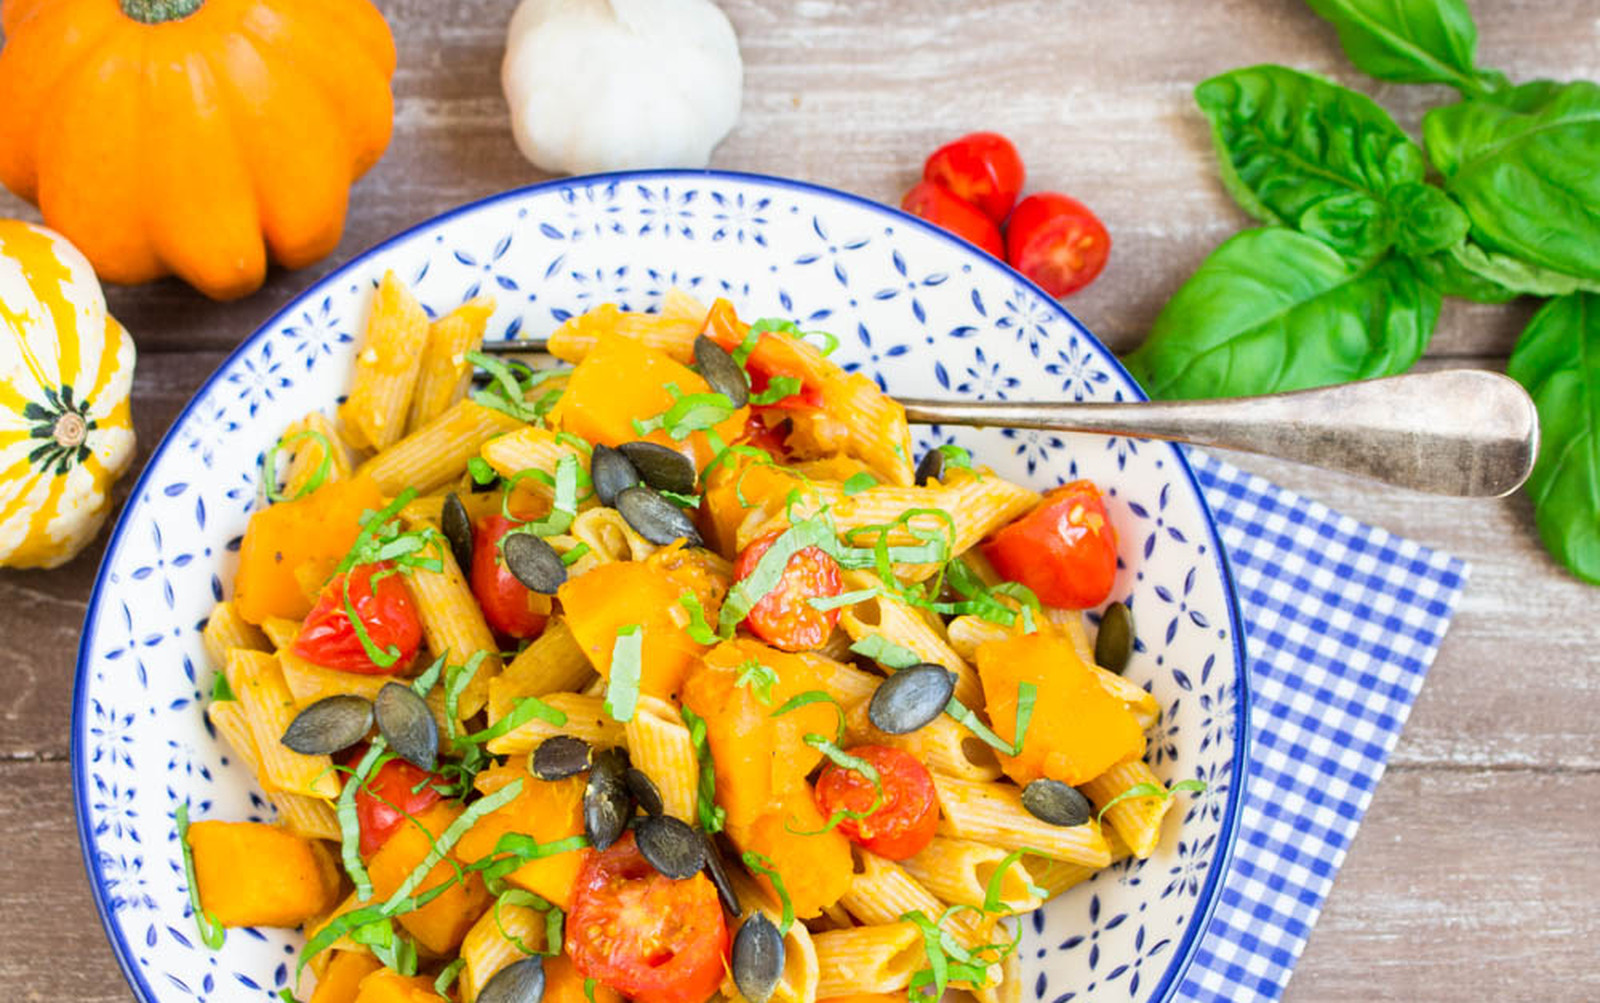 Pumpkin Pasta With Tomatoes and Basil [Vegan]